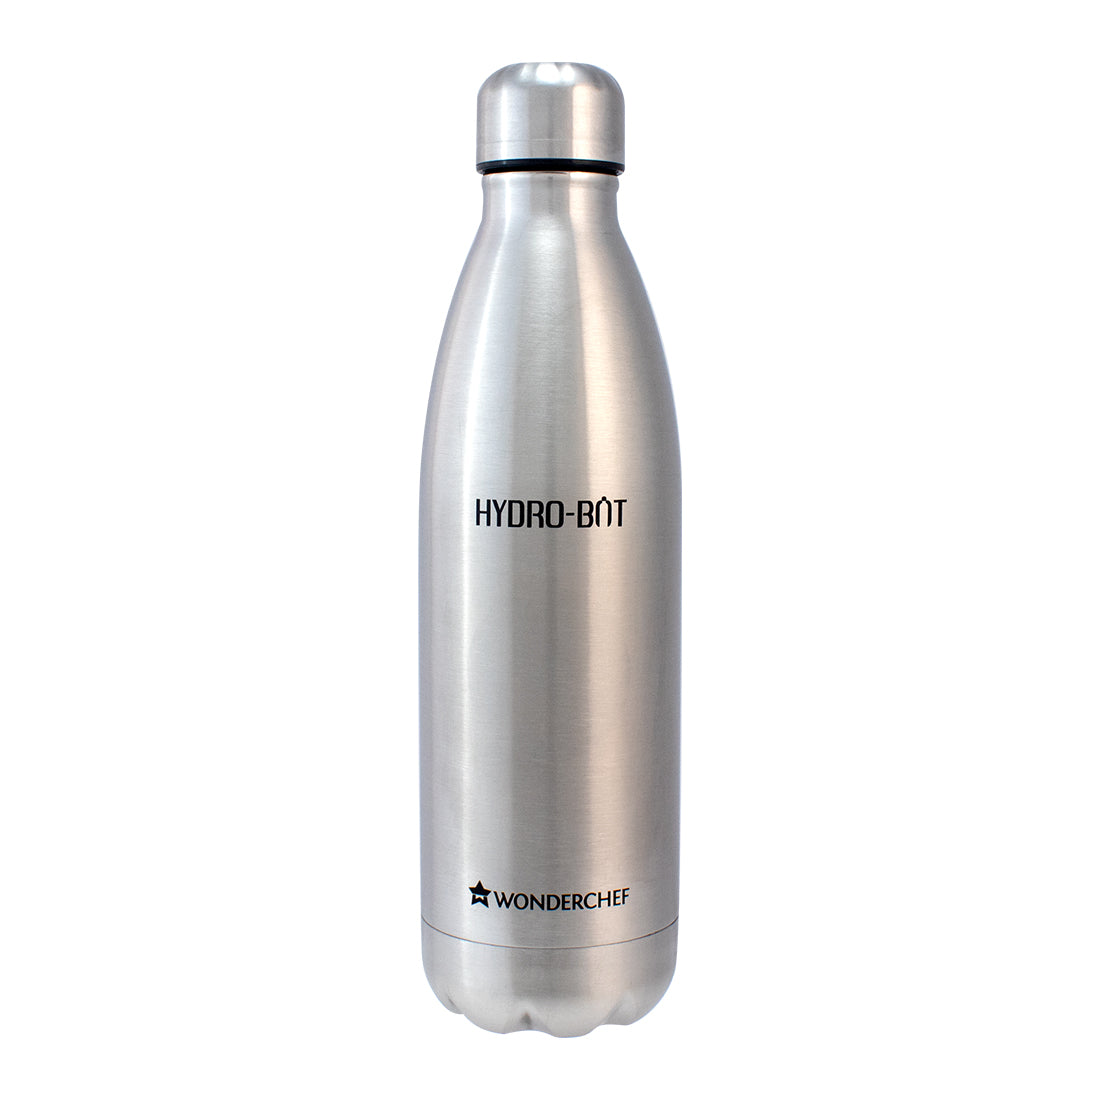 Wonderchef Hydro-Bot Single Wall Bottle